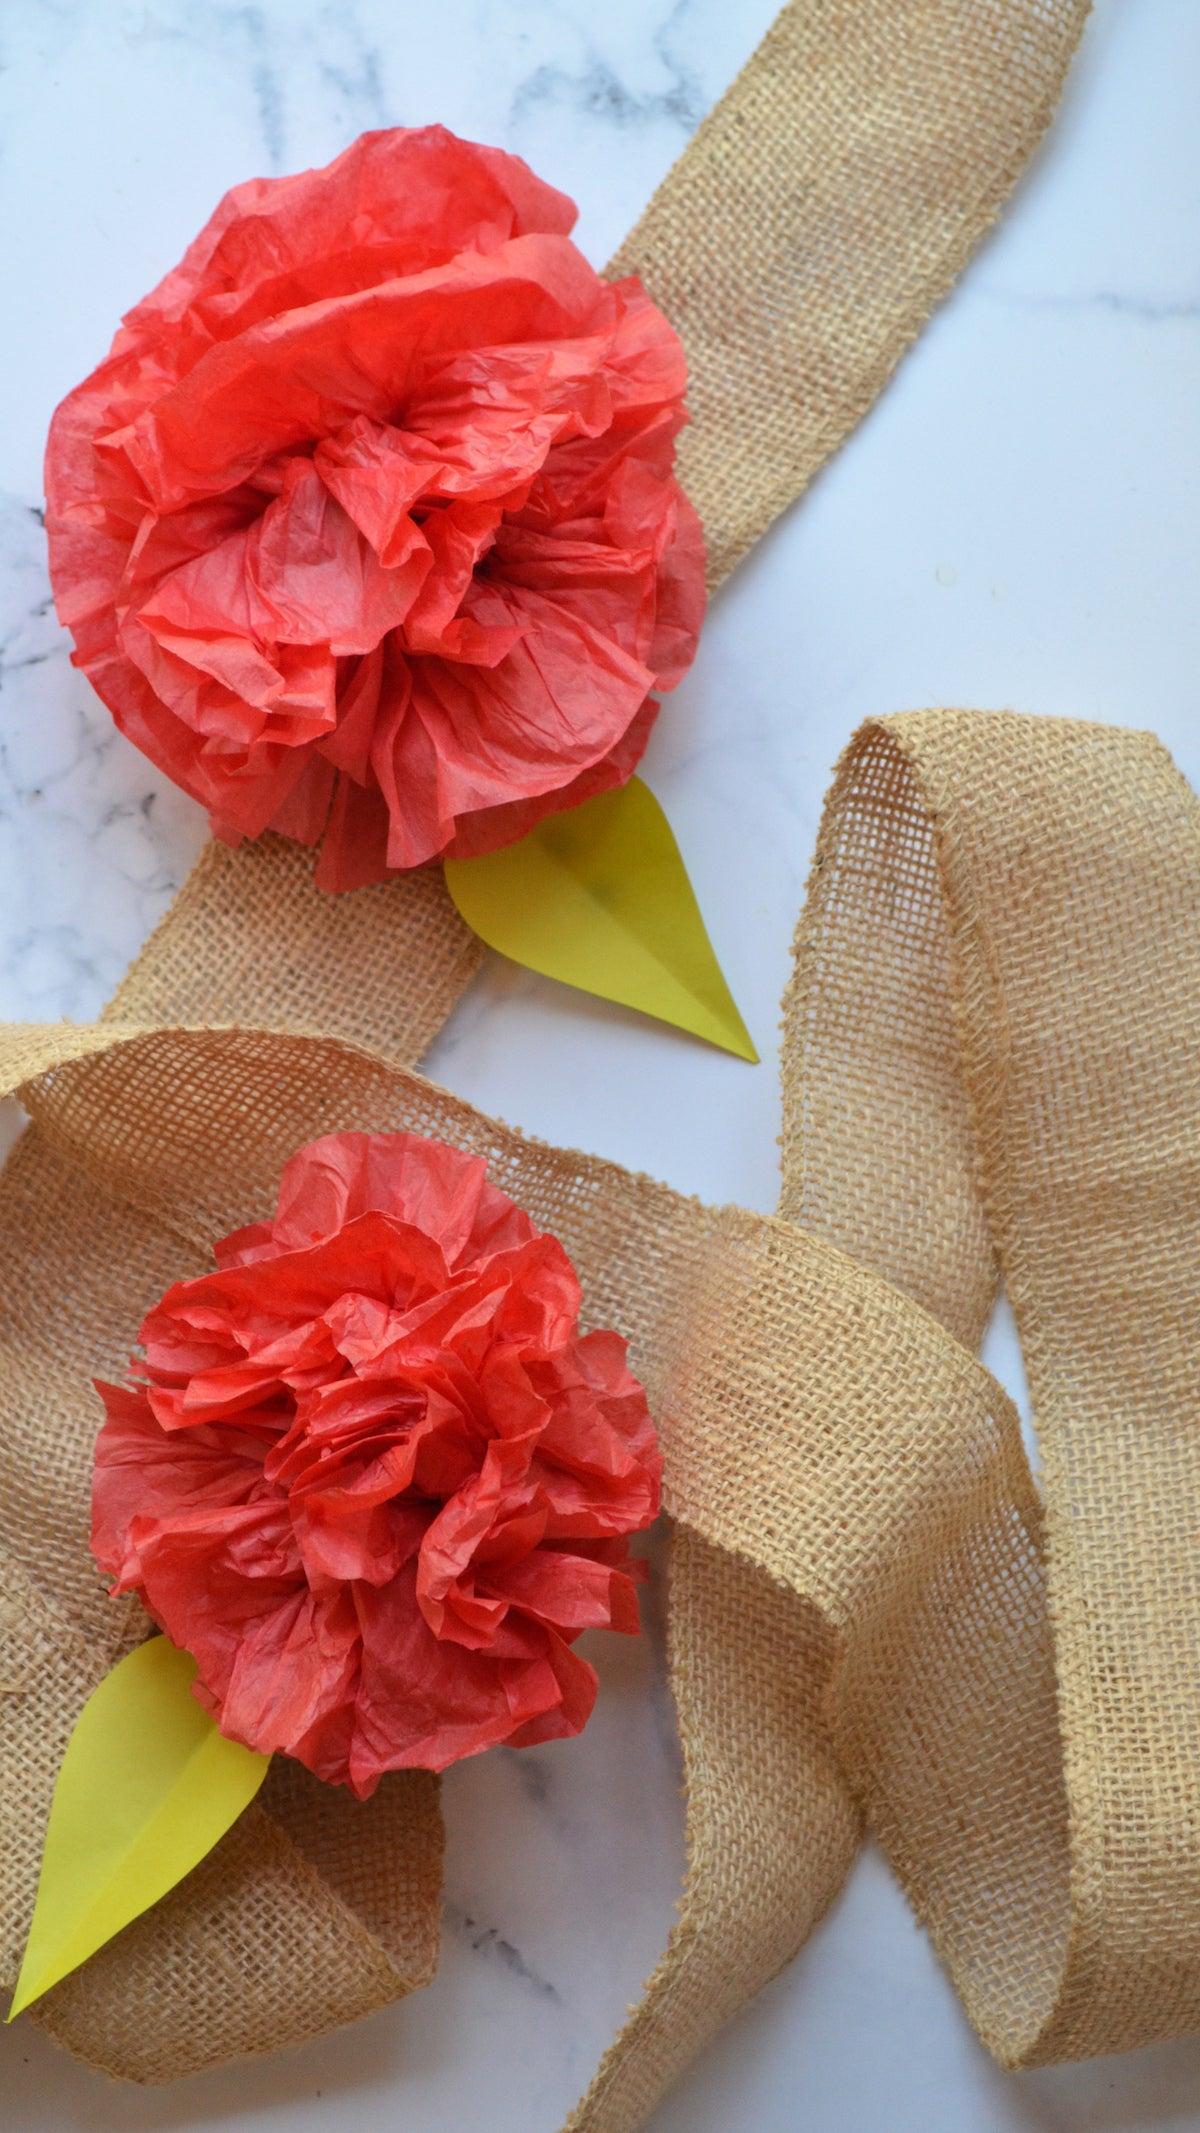 Tissue flowers DIY